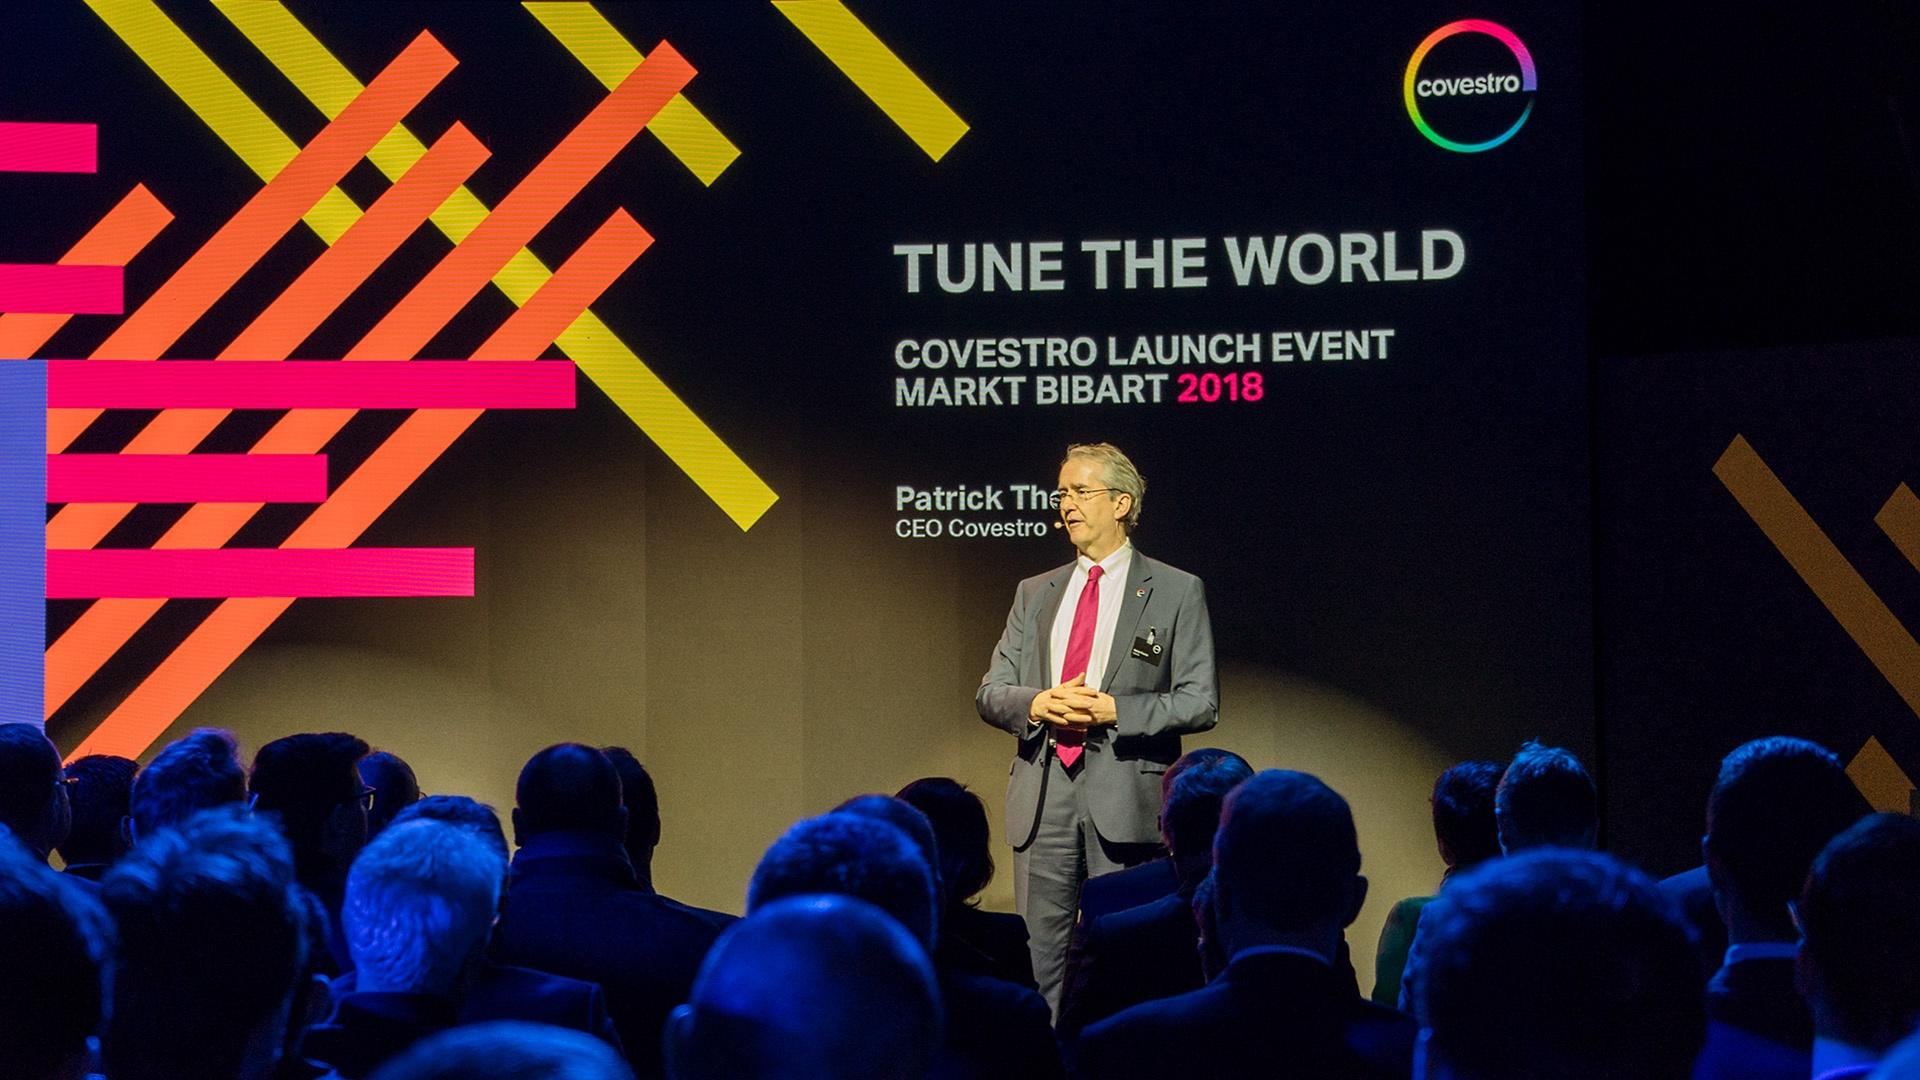 Covestro Launch Event Markt Bibart